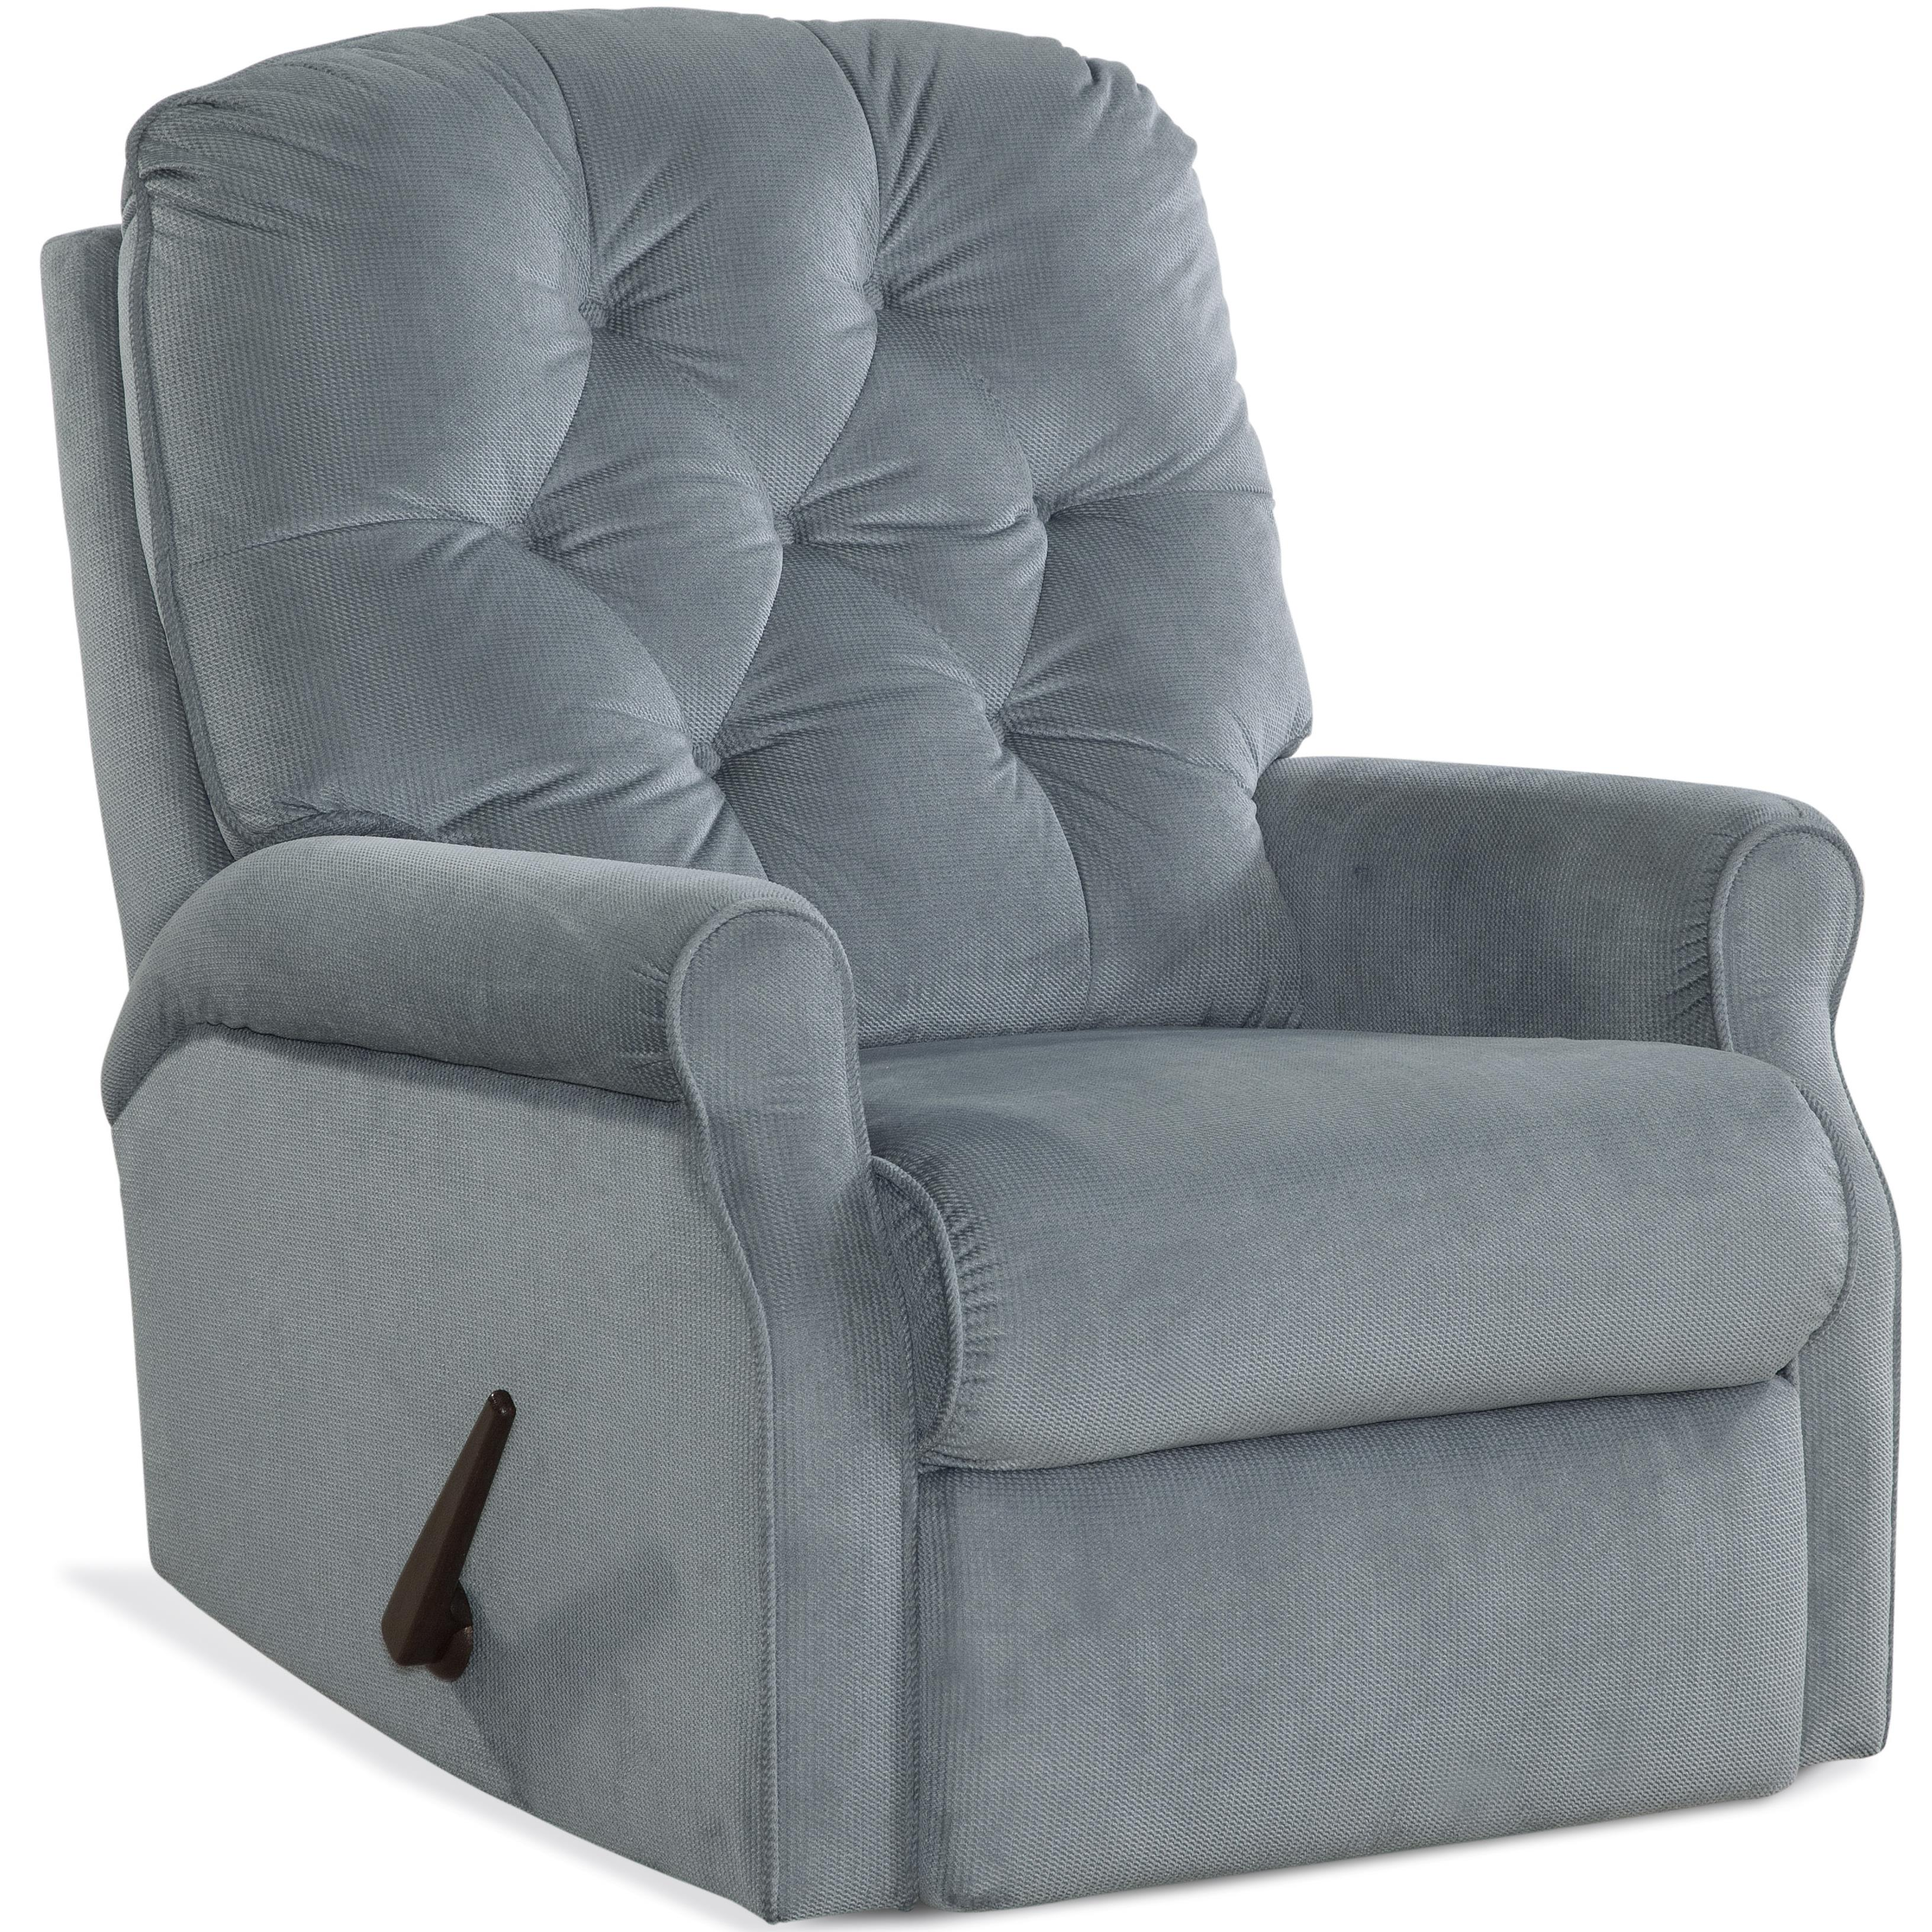 Comfort Living R&R Casual Recliner - Item Number: 127-91-62